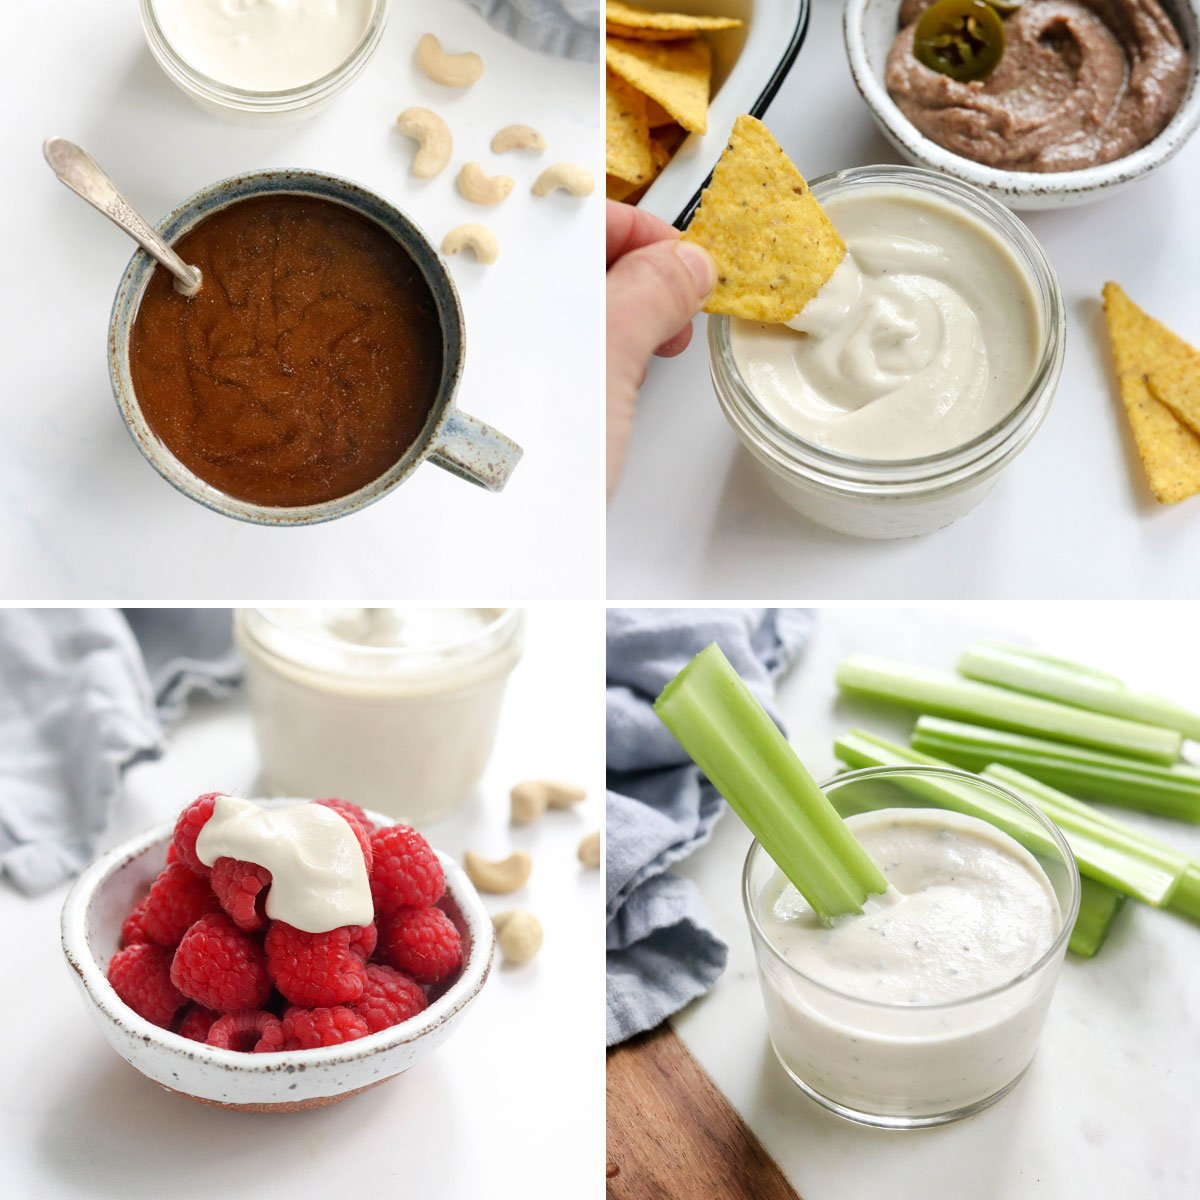 cashew cream in coffee, with a tortilla chip, over raspberries, and as a ranch dip with celery